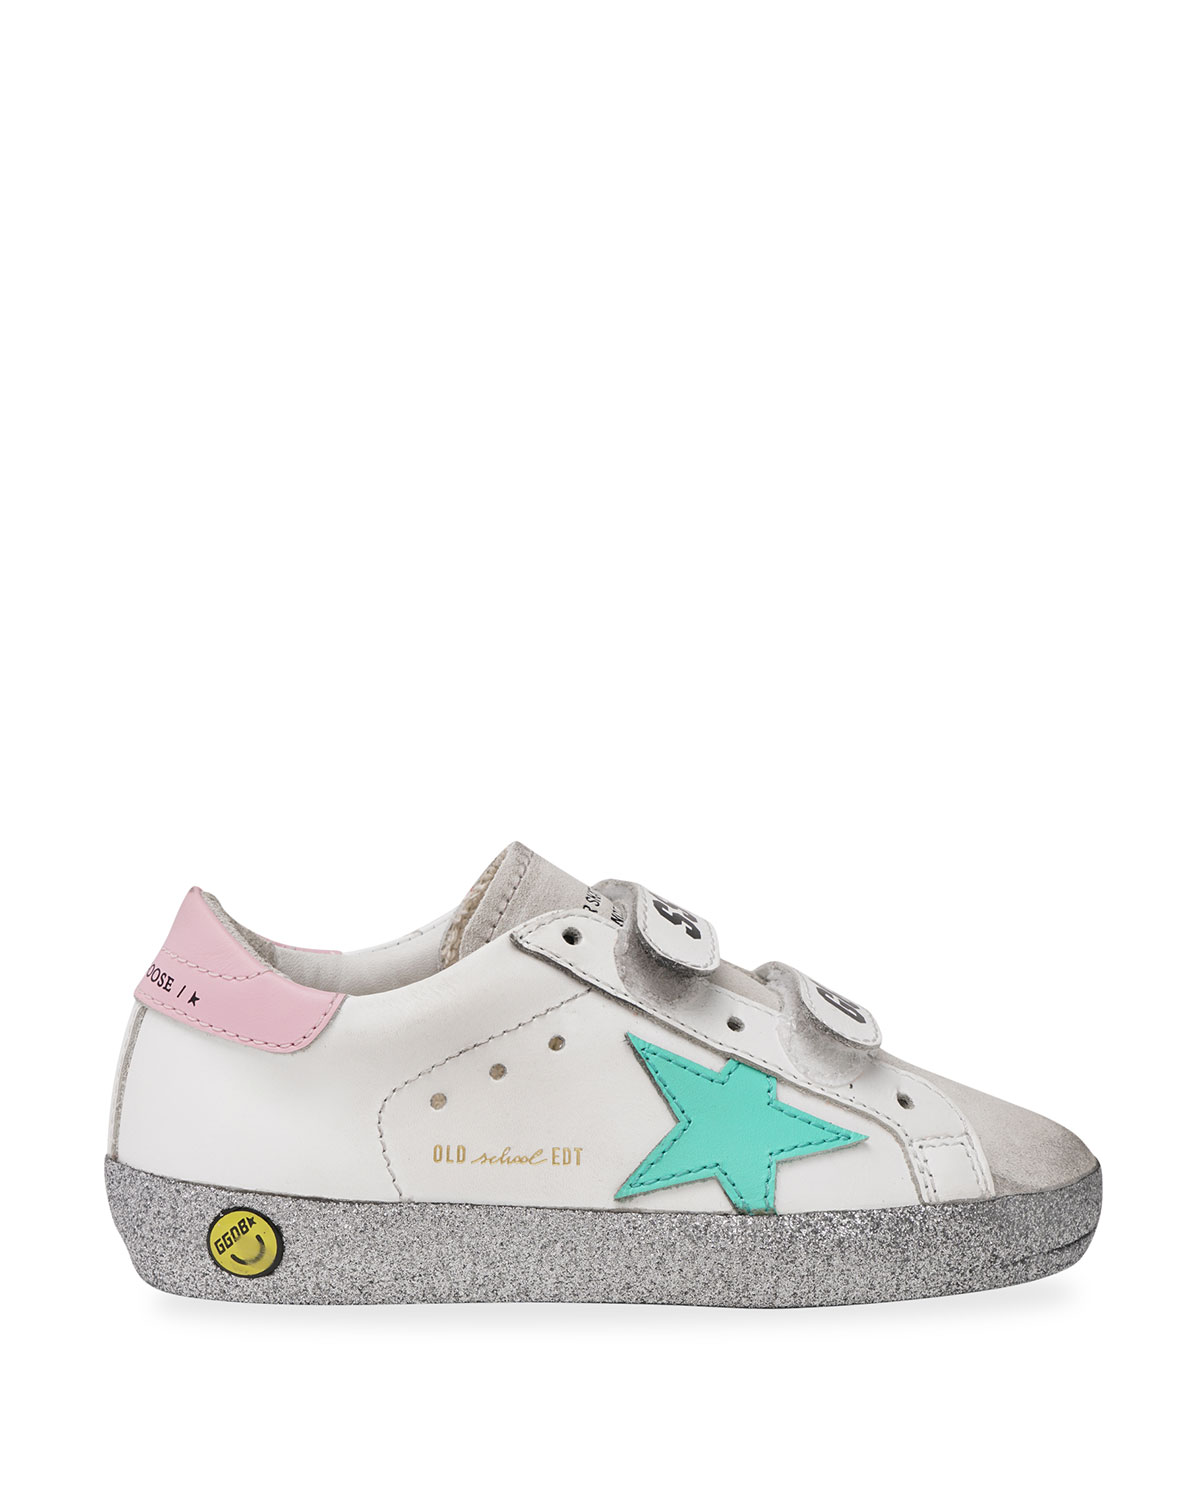 Golden Goose OLD SCHOOL LEATHER GRIP-STRAP GLITTER-SOLE SNEAKERS, BABY/TODDLERS